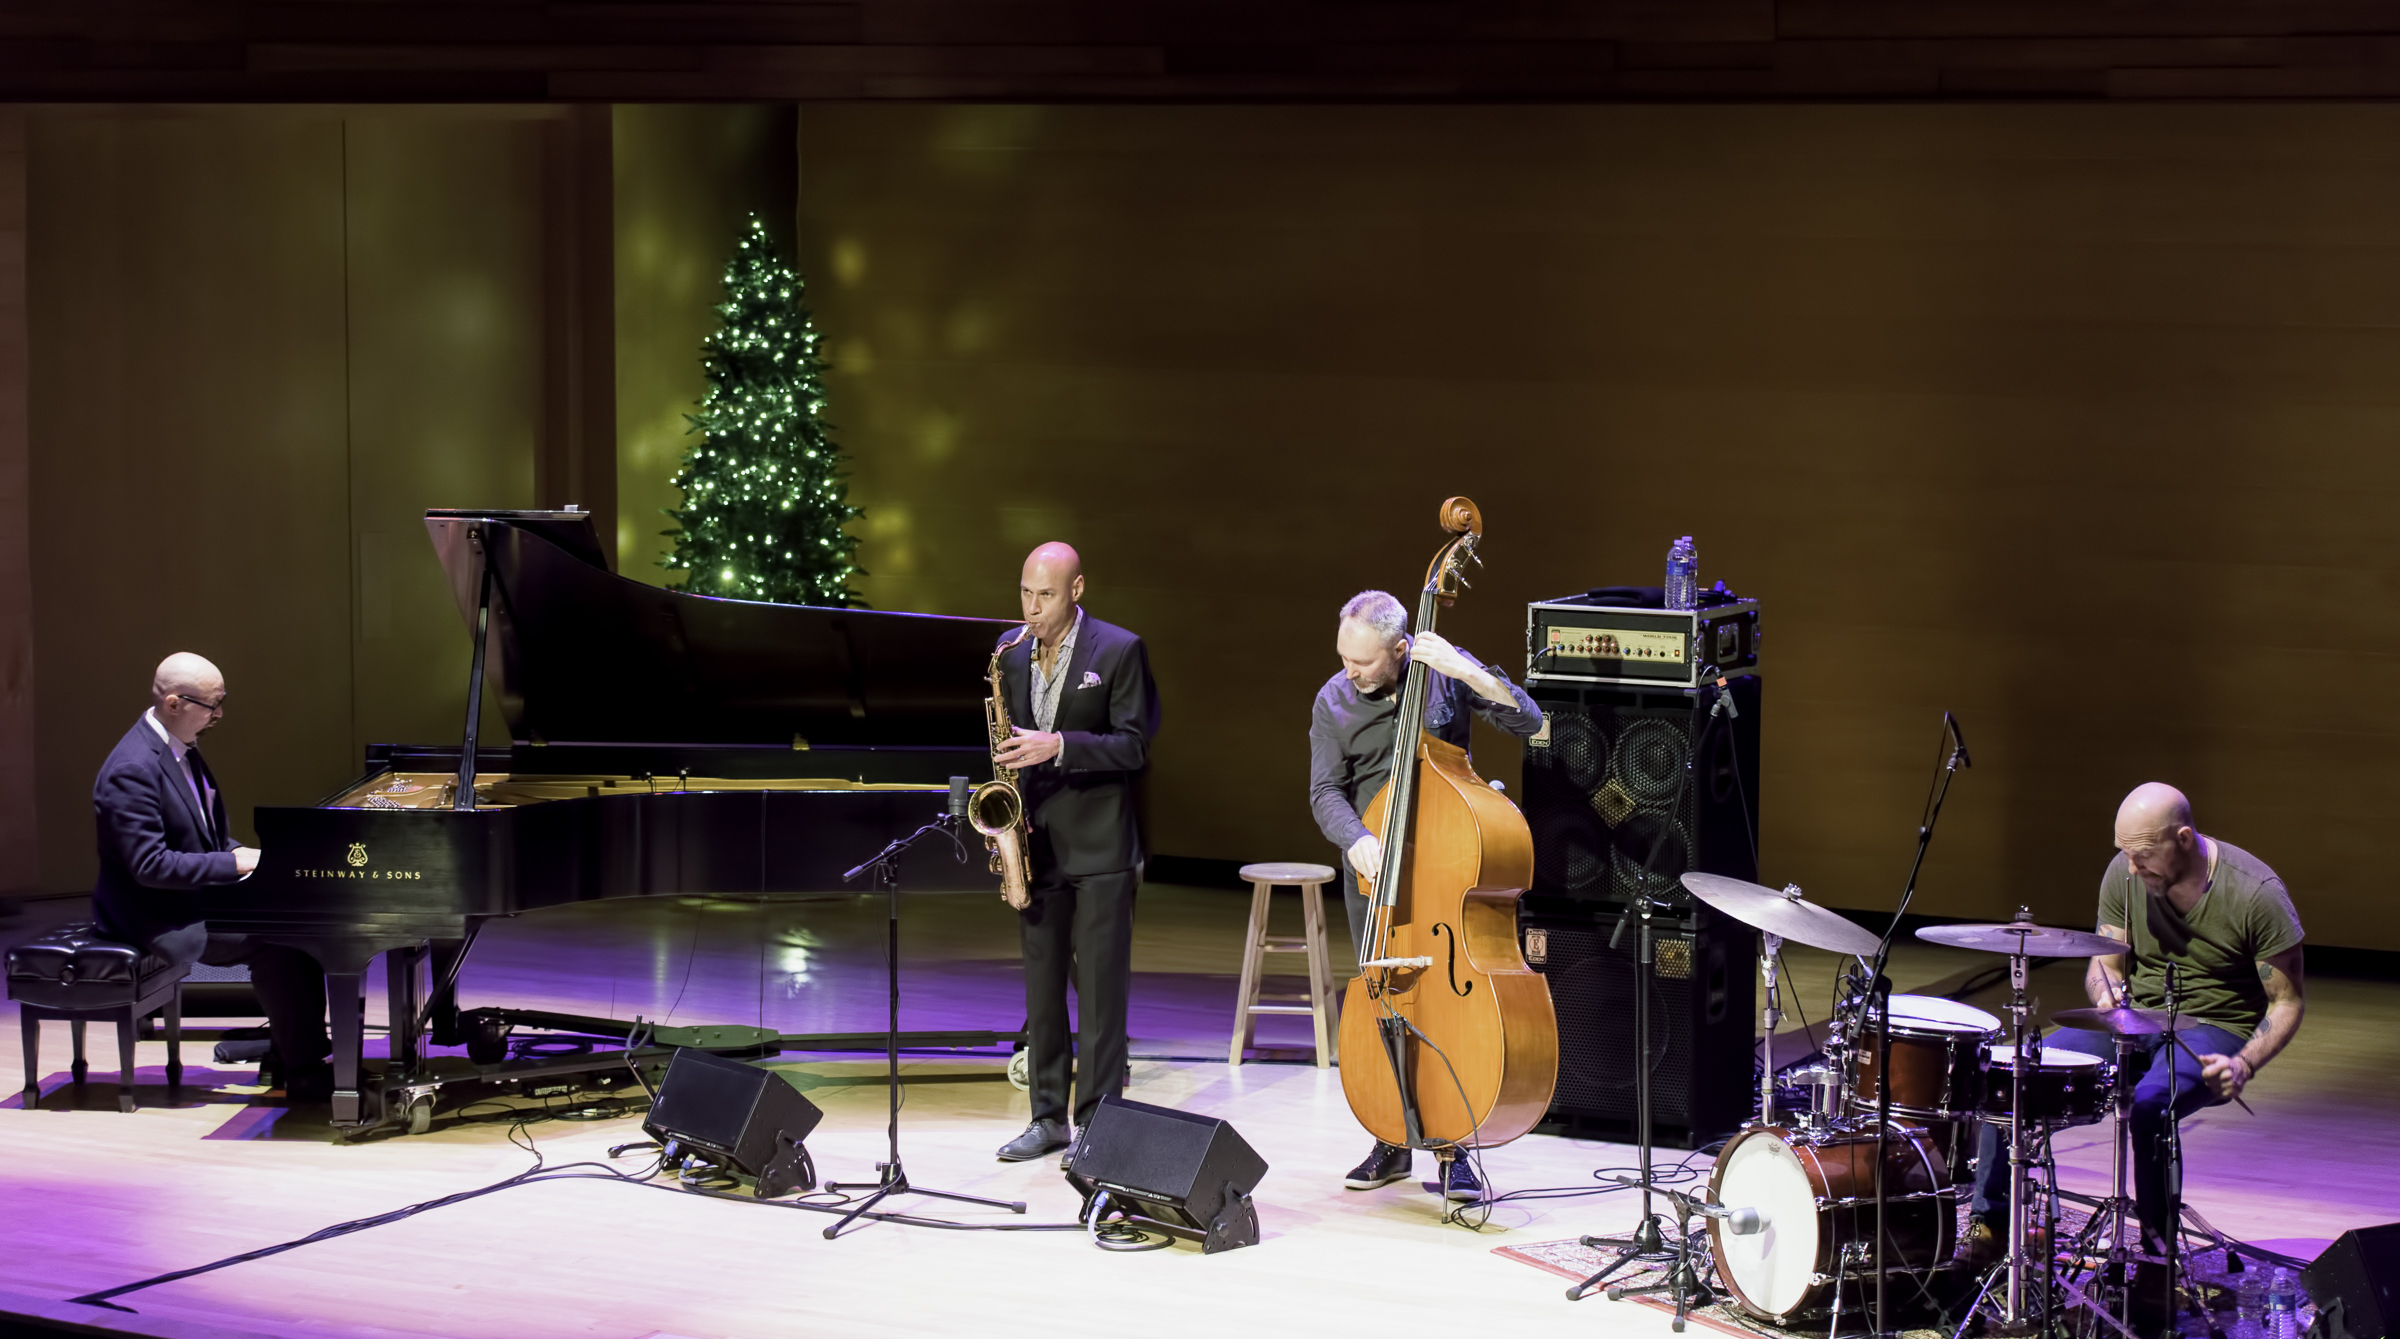 Ethan Iverson, Joshua Redman, Reid Anderson And Dave King With The Bad Plus At The Musical Instrument Museum (mim) Phoenix